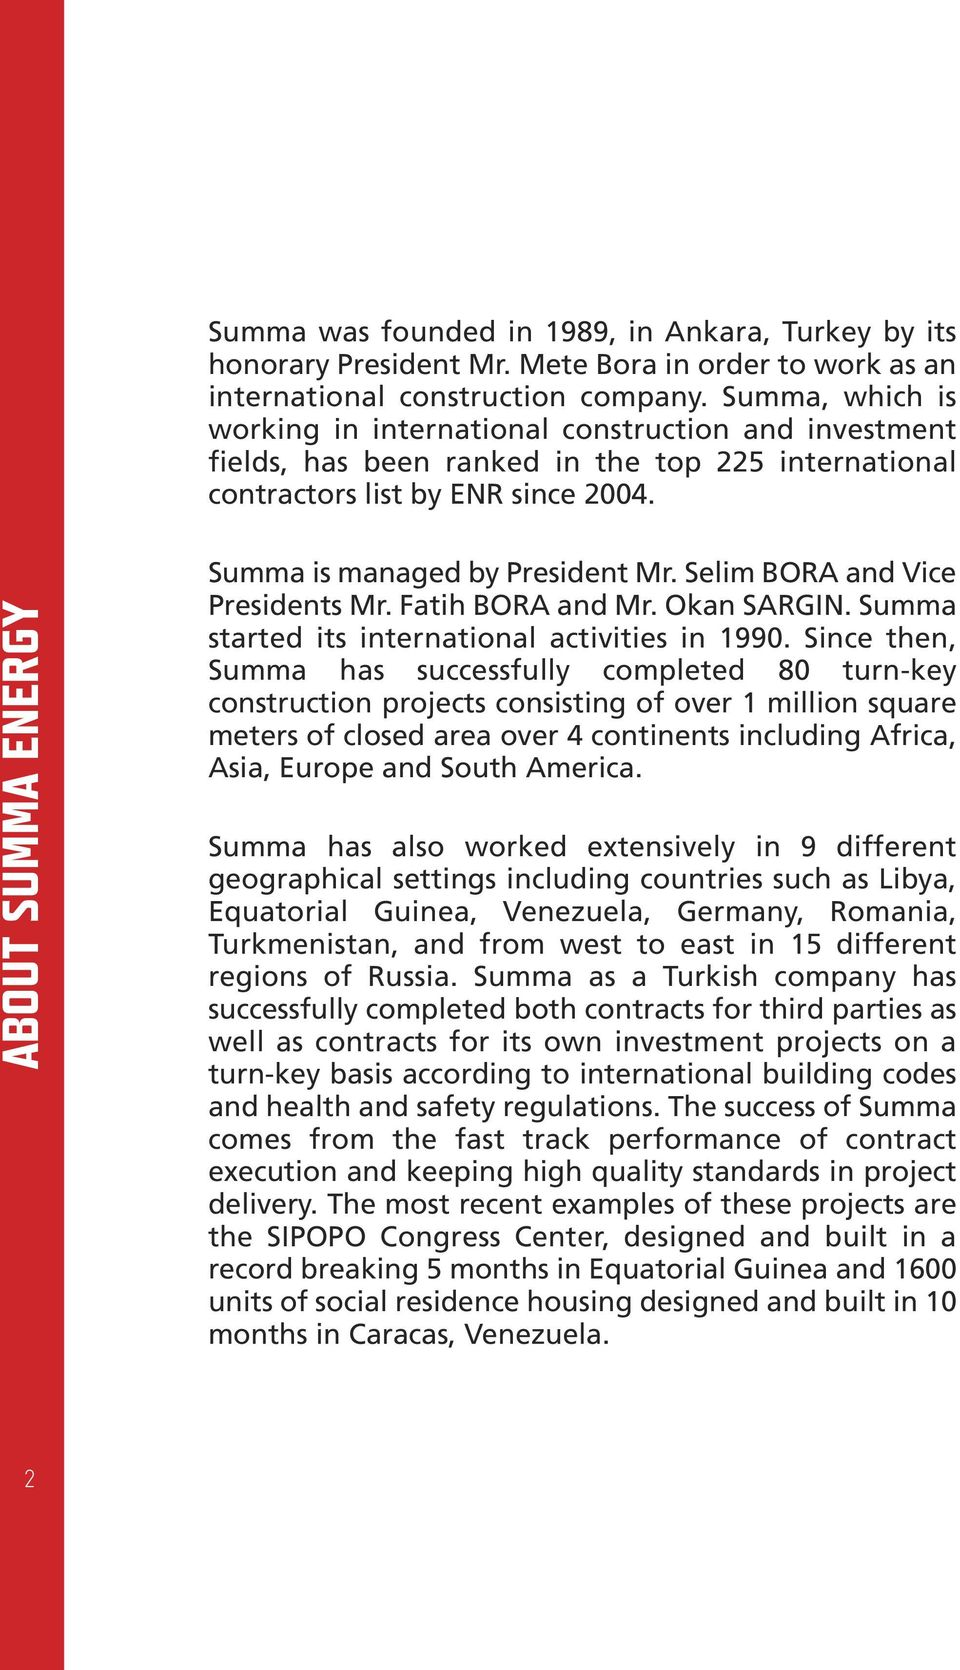 2ABOUT SUMMA ENERGY Summa is managed by President Mr. Selim BORA and Vice Presidents Mr. Fatih BORA and Mr. Okan SARGIN. Summa started its international activities in 1990.